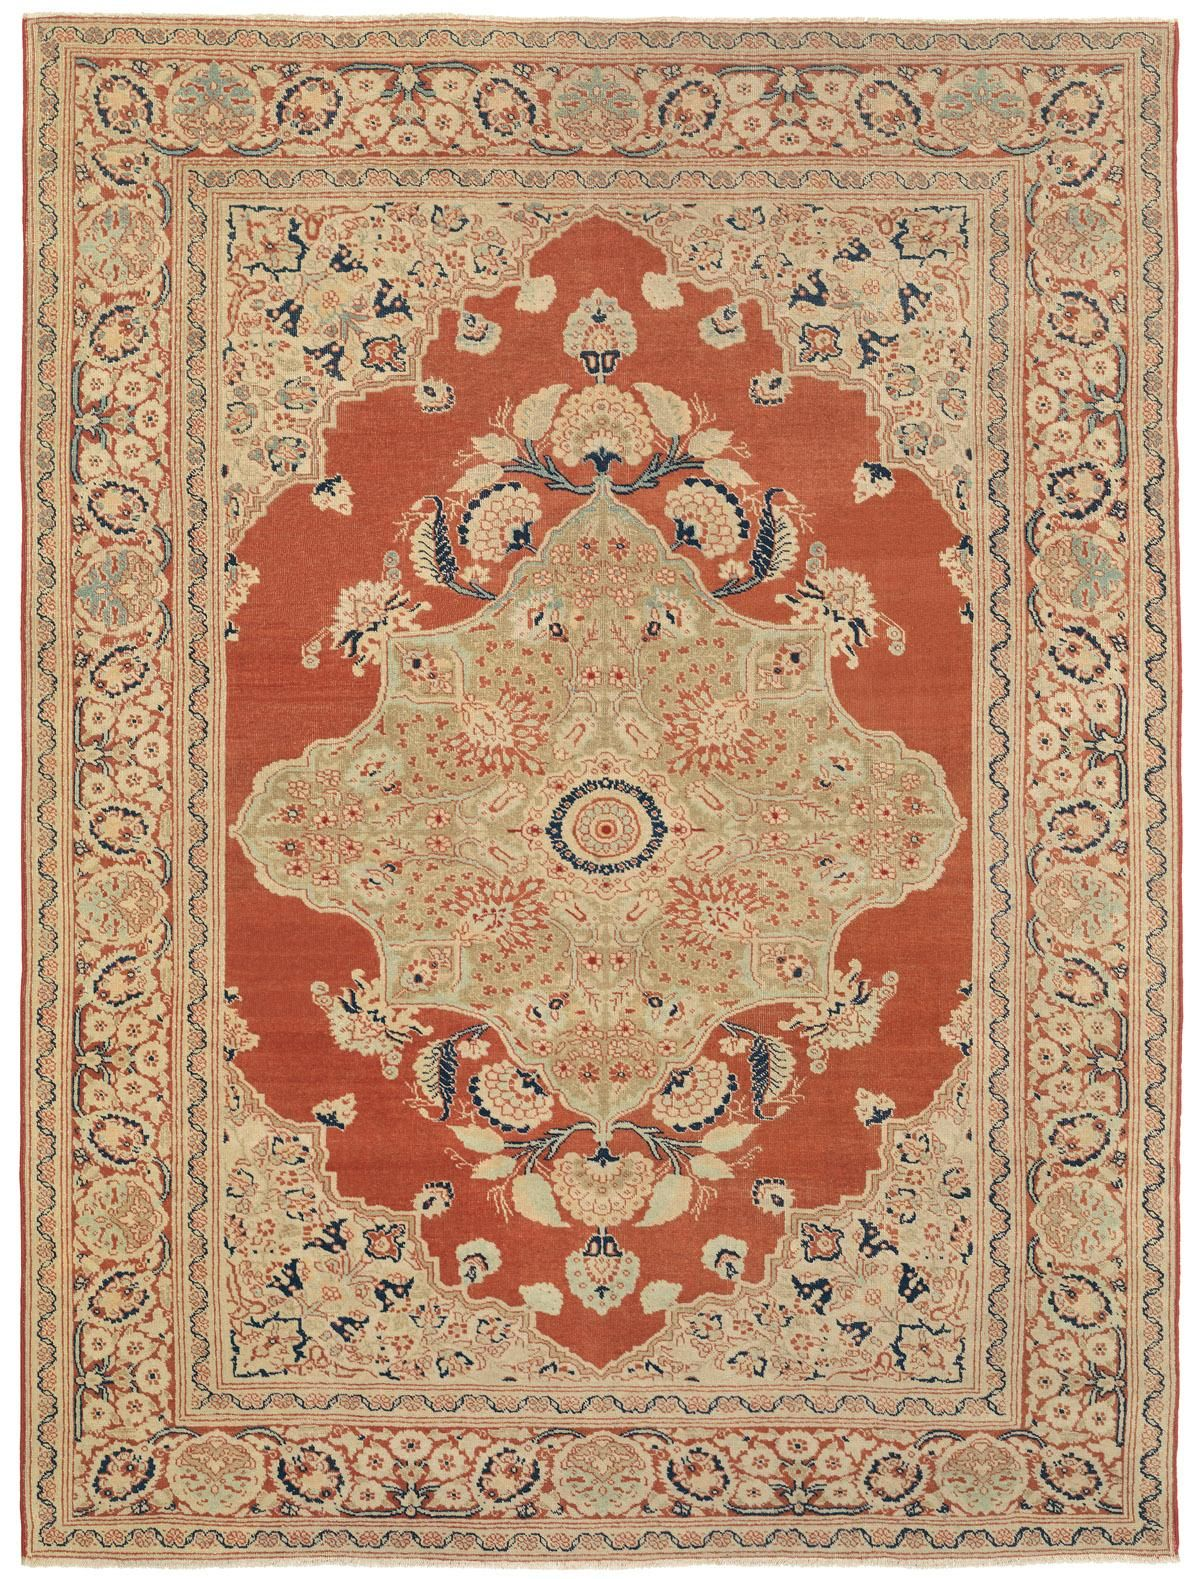 Antique Rug From The Hadji Jallili Workshop Persian Rug Designs Vintage Persian Rug Claremont Rug Company